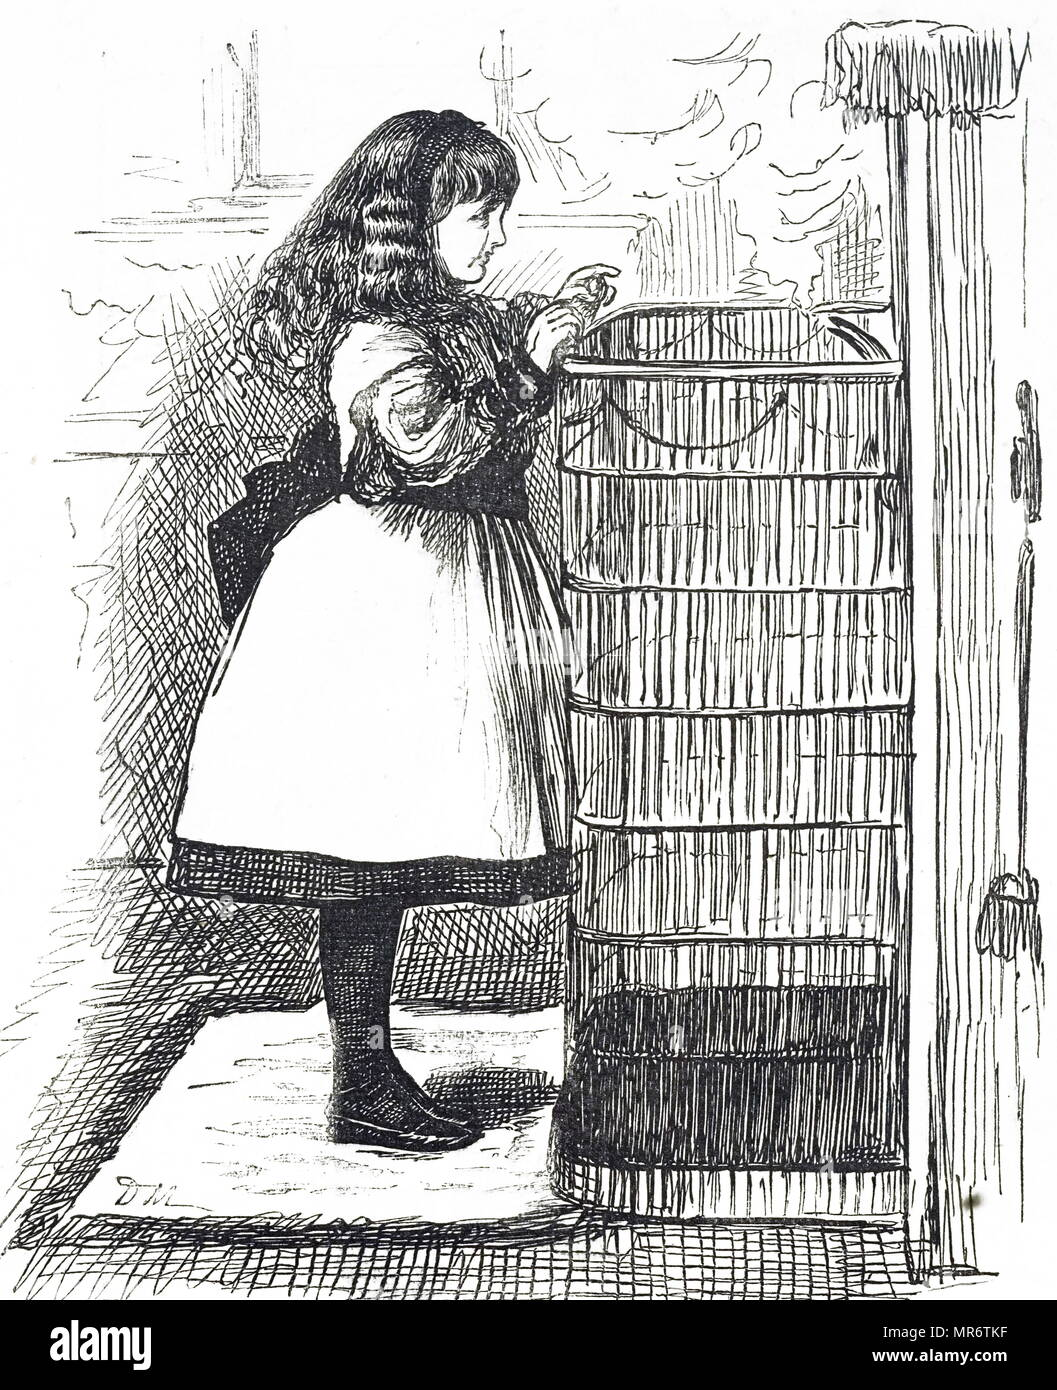 Cartoon depicting a young girl standing in front of a large fireguard. Illustrated by George du Maurier (1834-1896) a Franco-British cartoonist and author. Dated 19th century - Stock Image